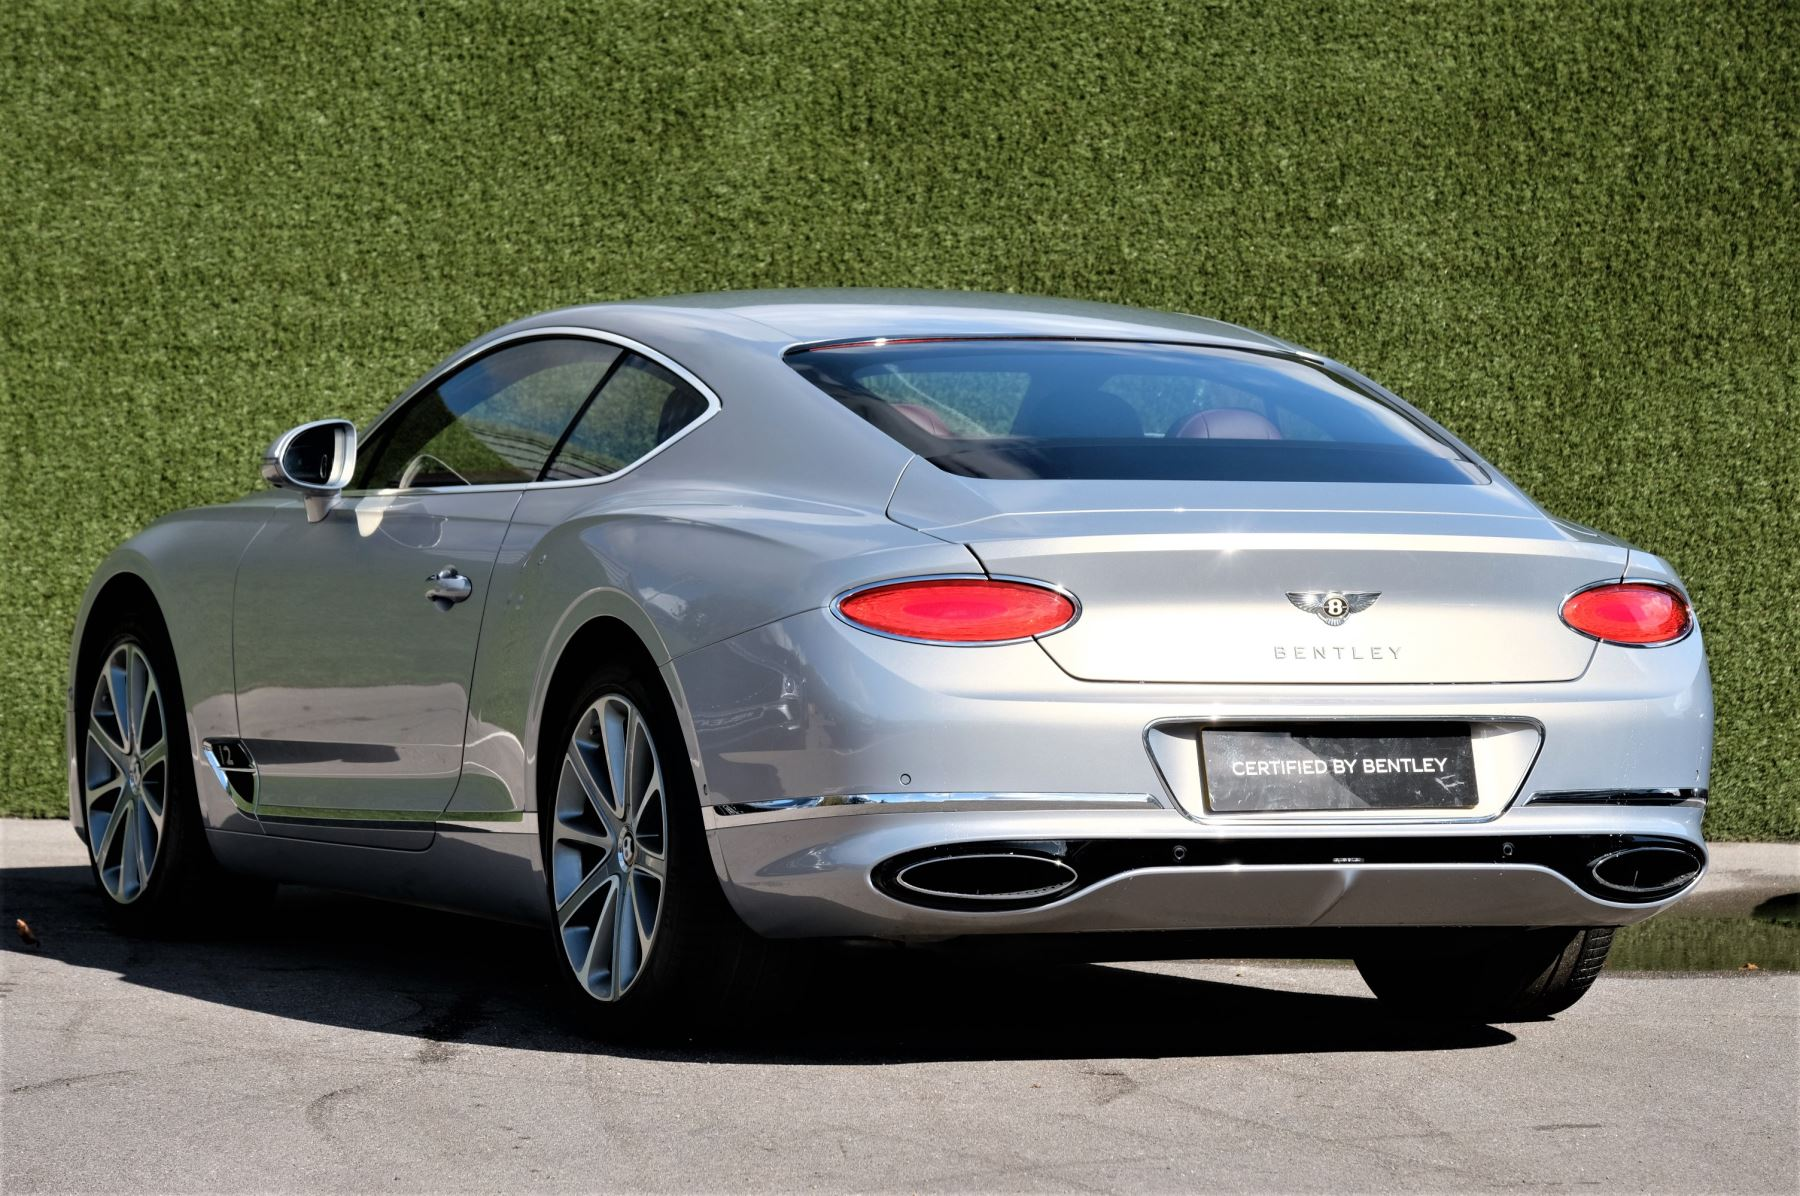 Bentley Continental GT 6.0 W12 Centenary, City and Touring Specification image 5